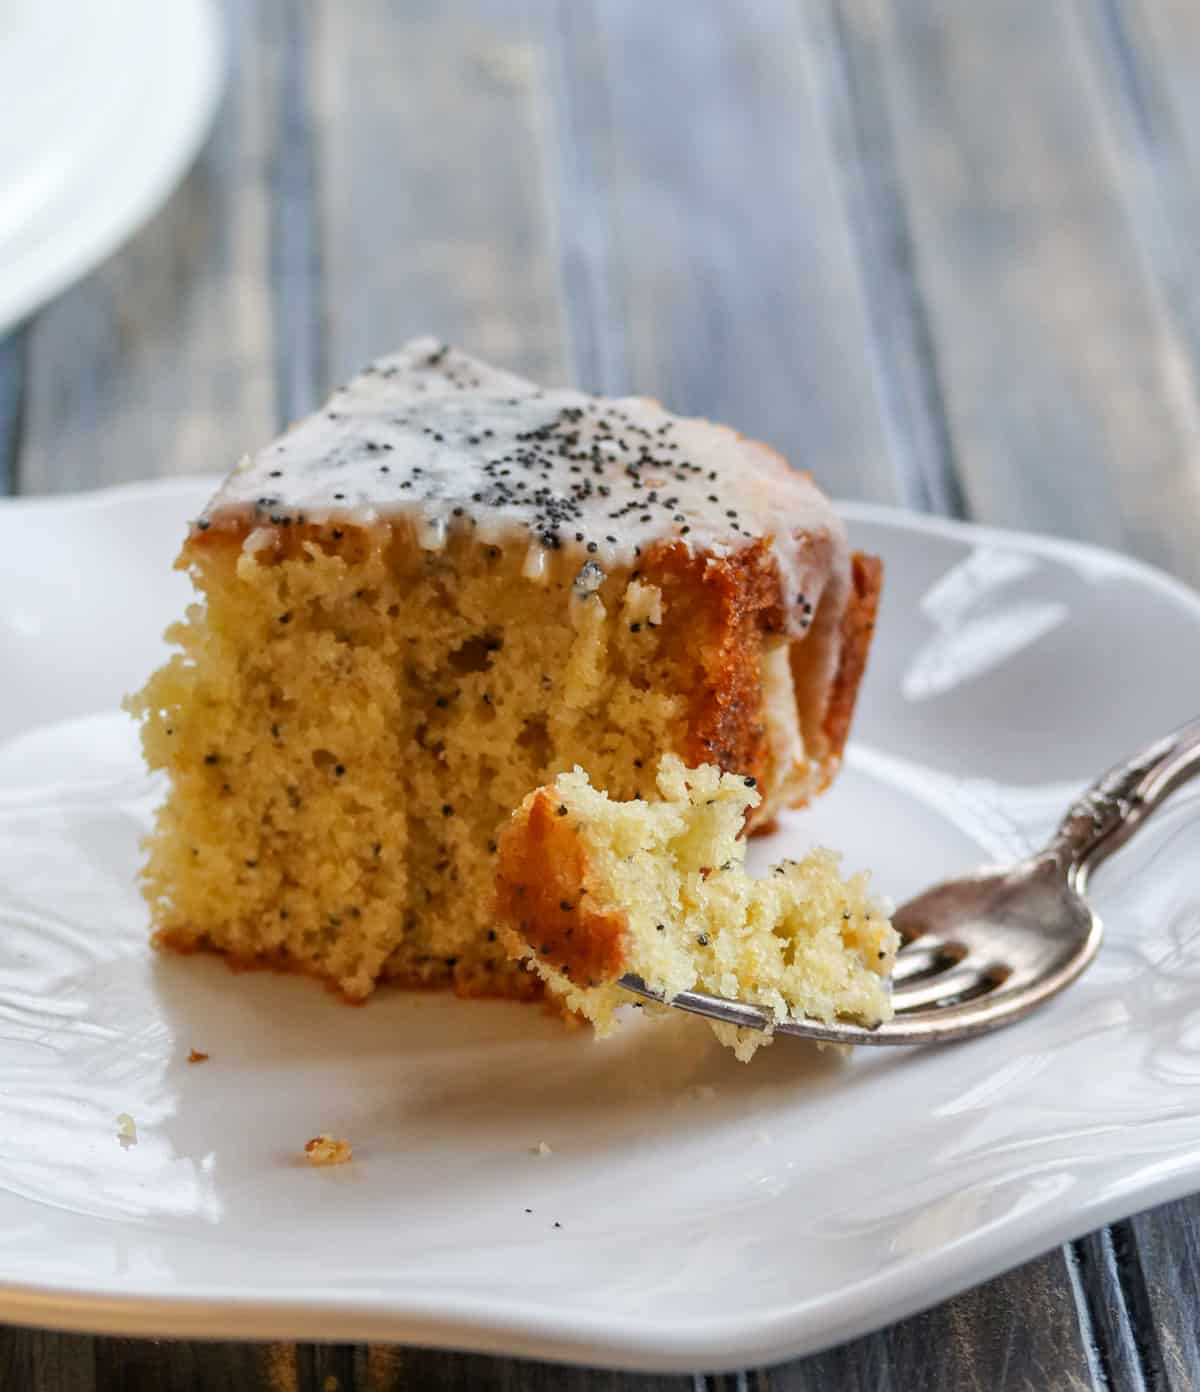 Glazed Meyer Lemon Poppy Seed Snacking Cake